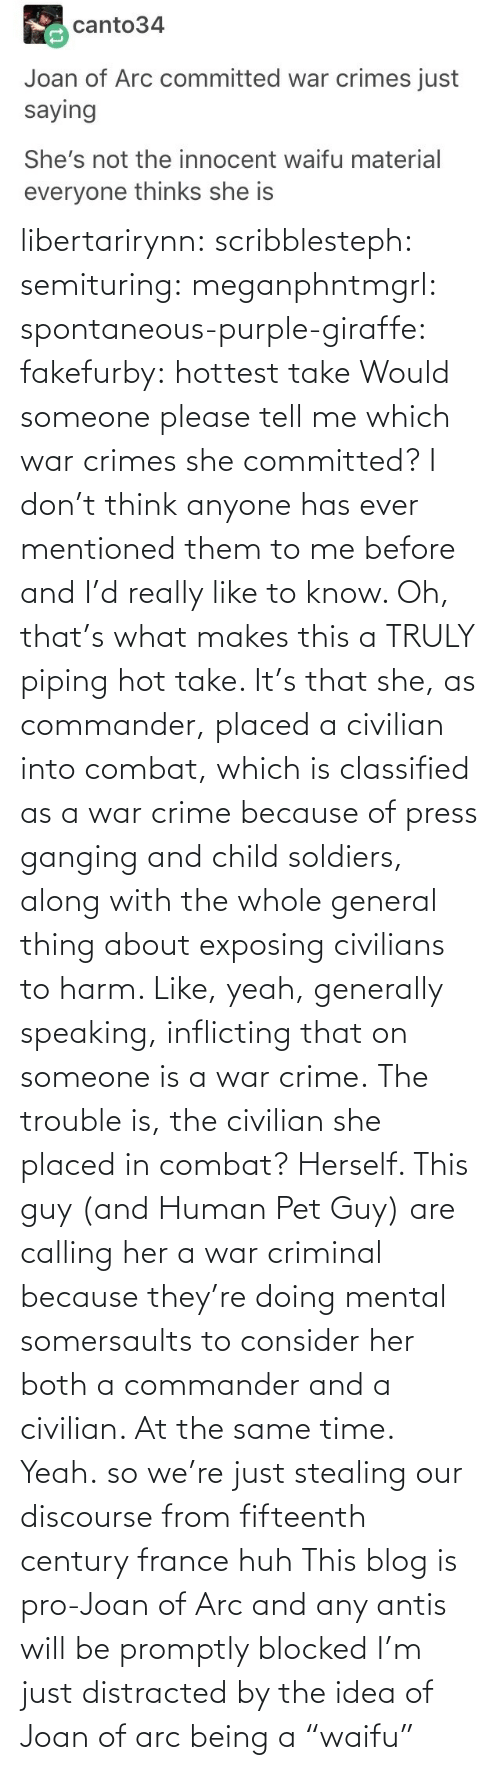 "Crime, Huh, and Soldiers: libertarirynn: scribblesteph:  semituring:  meganphntmgrl:  spontaneous-purple-giraffe:   fakefurby: hottest take  Would someone please tell me which war crimes she committed? I don't think anyone has ever mentioned them to me before and I'd really like to know.    Oh, that's what makes this a TRULY piping hot take. It's that she, as commander, placed a civilian into combat, which is classified as a war crime because of press ganging and child soldiers, along with the whole general thing about exposing civilians to harm. Like, yeah, generally speaking, inflicting that on someone is a war crime. The trouble is, the civilian she placed in combat? Herself.  This guy (and Human Pet Guy) are calling her a war criminal because they're doing mental somersaults to consider her both a commander and a civilian. At the same time.  Yeah.  so we're just stealing our discourse from fifteenth century france huh   This blog is pro-Joan of Arc and any antis will be promptly blocked   I'm just distracted by the idea of Joan of arc being a ""waifu"""